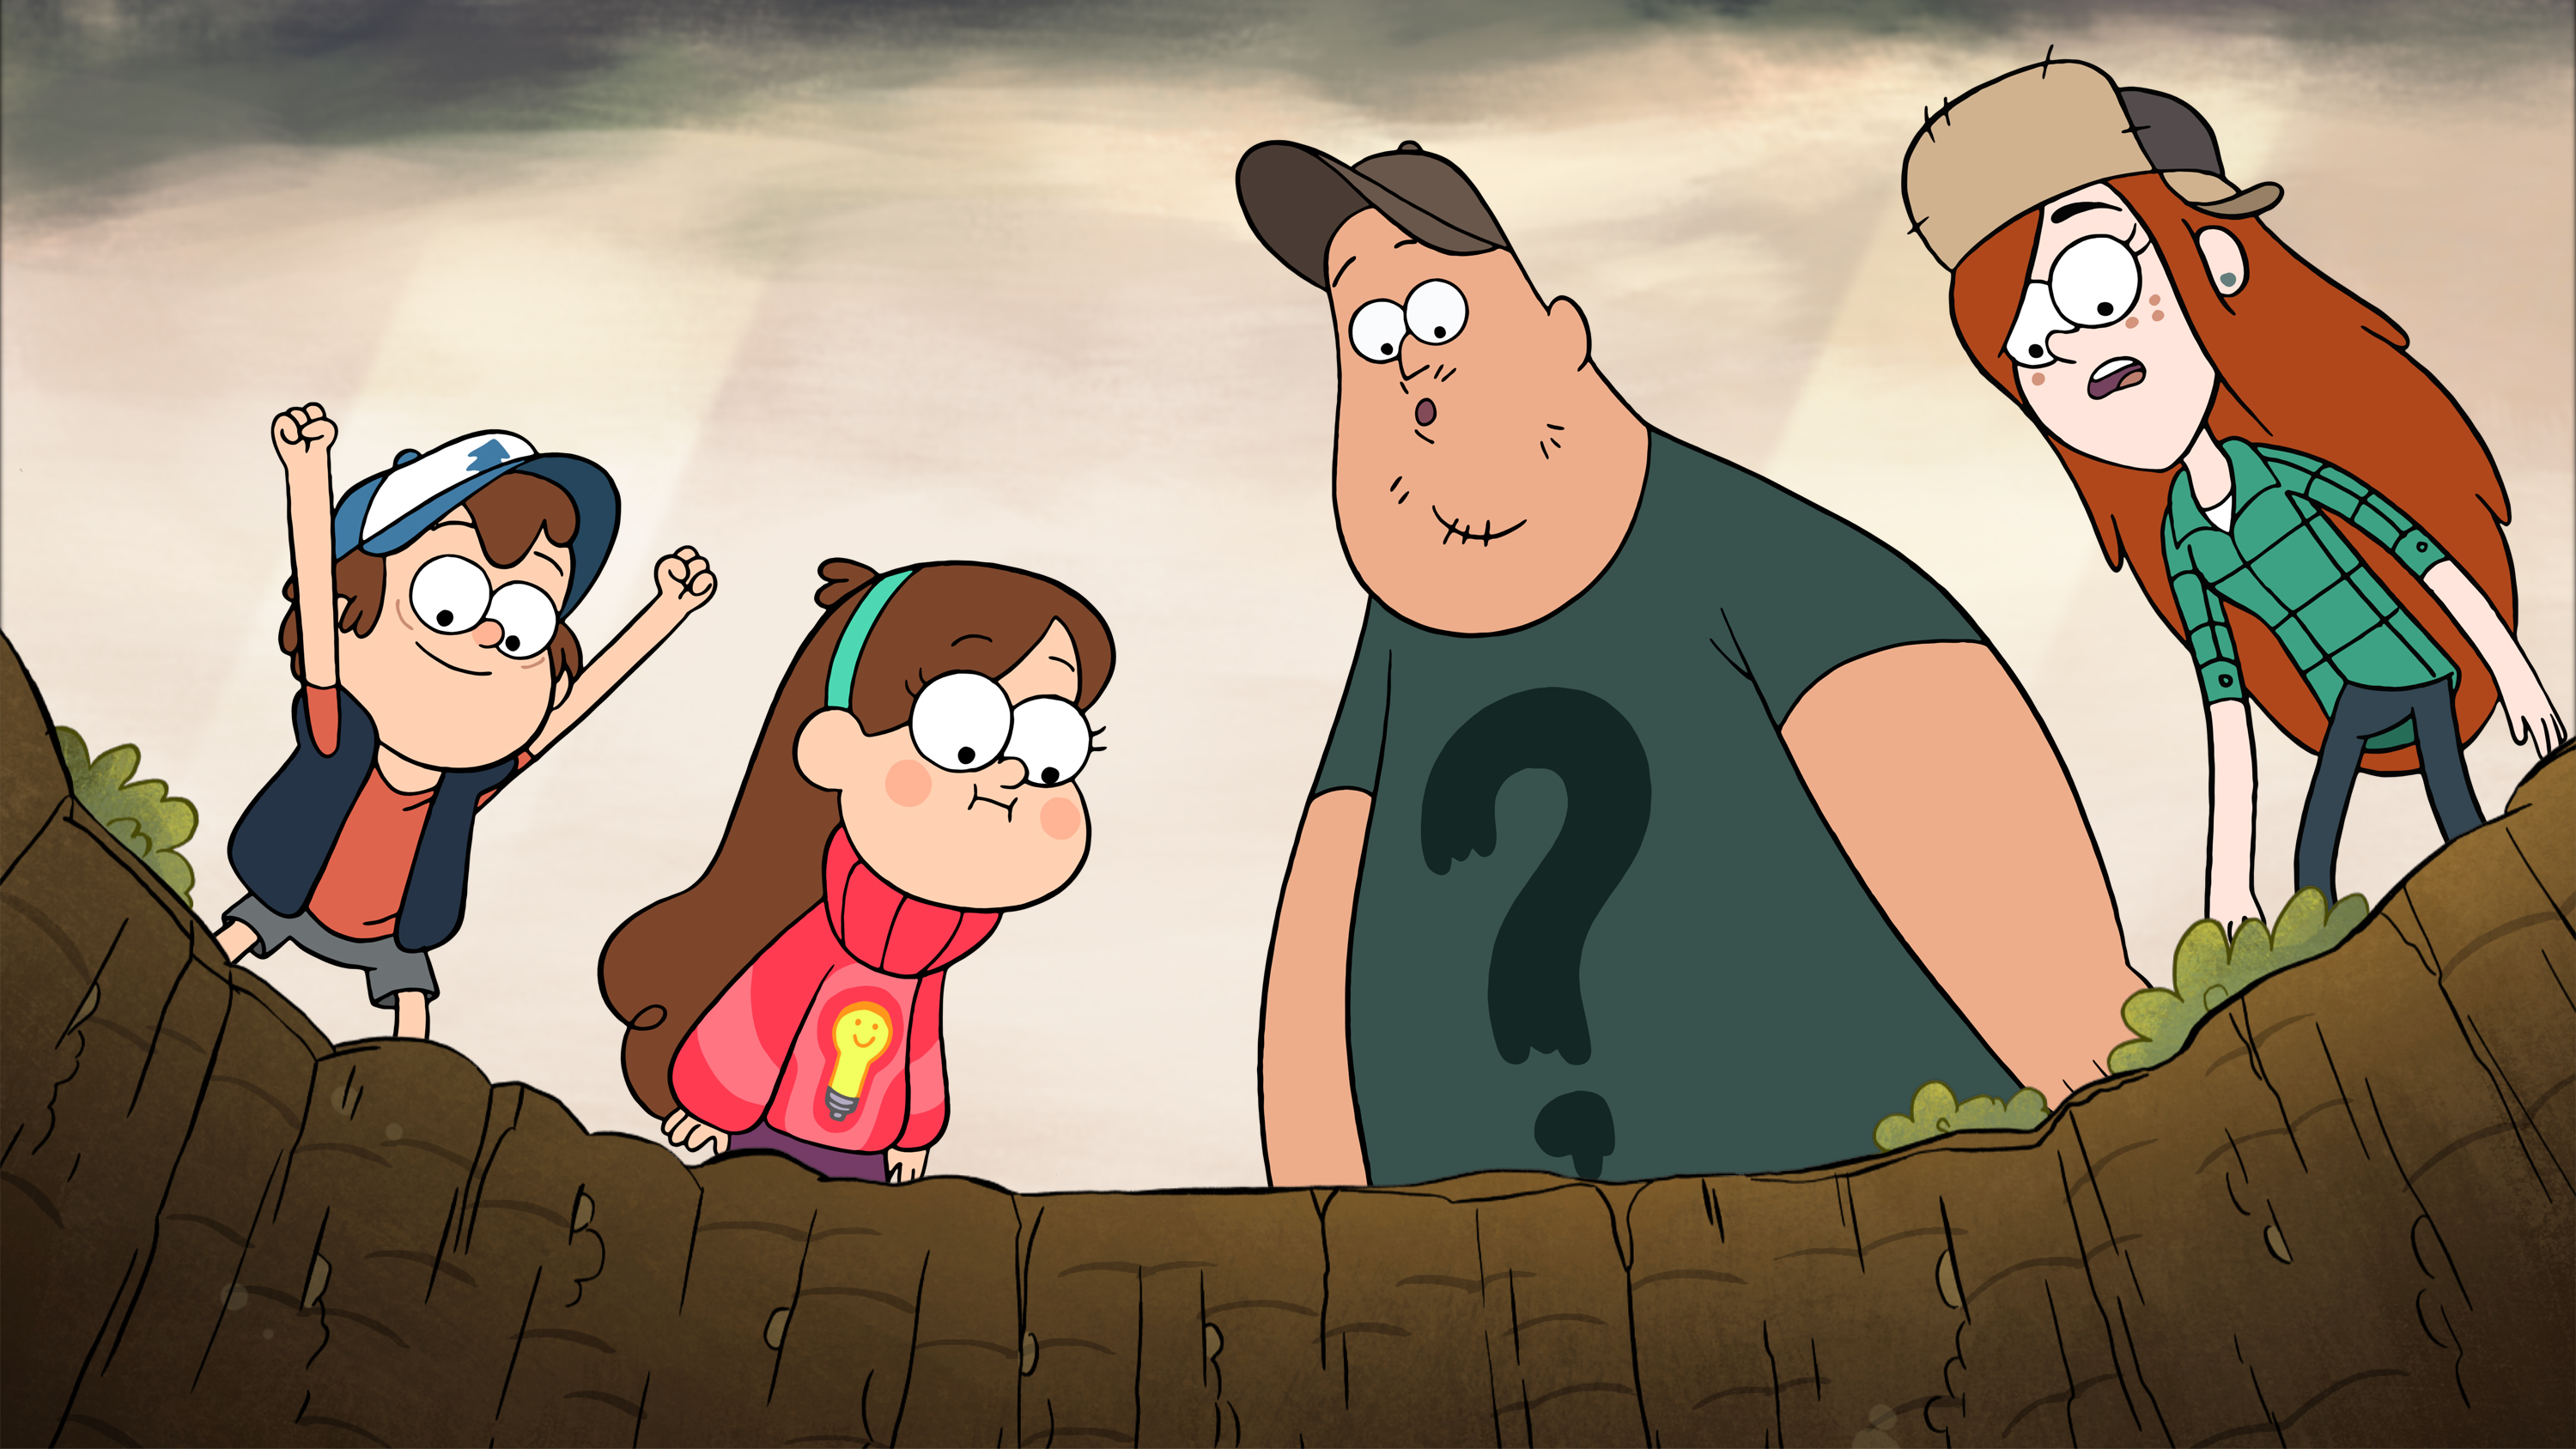 Dipper, Mabel, Soos and Wendy from Gravity Falls